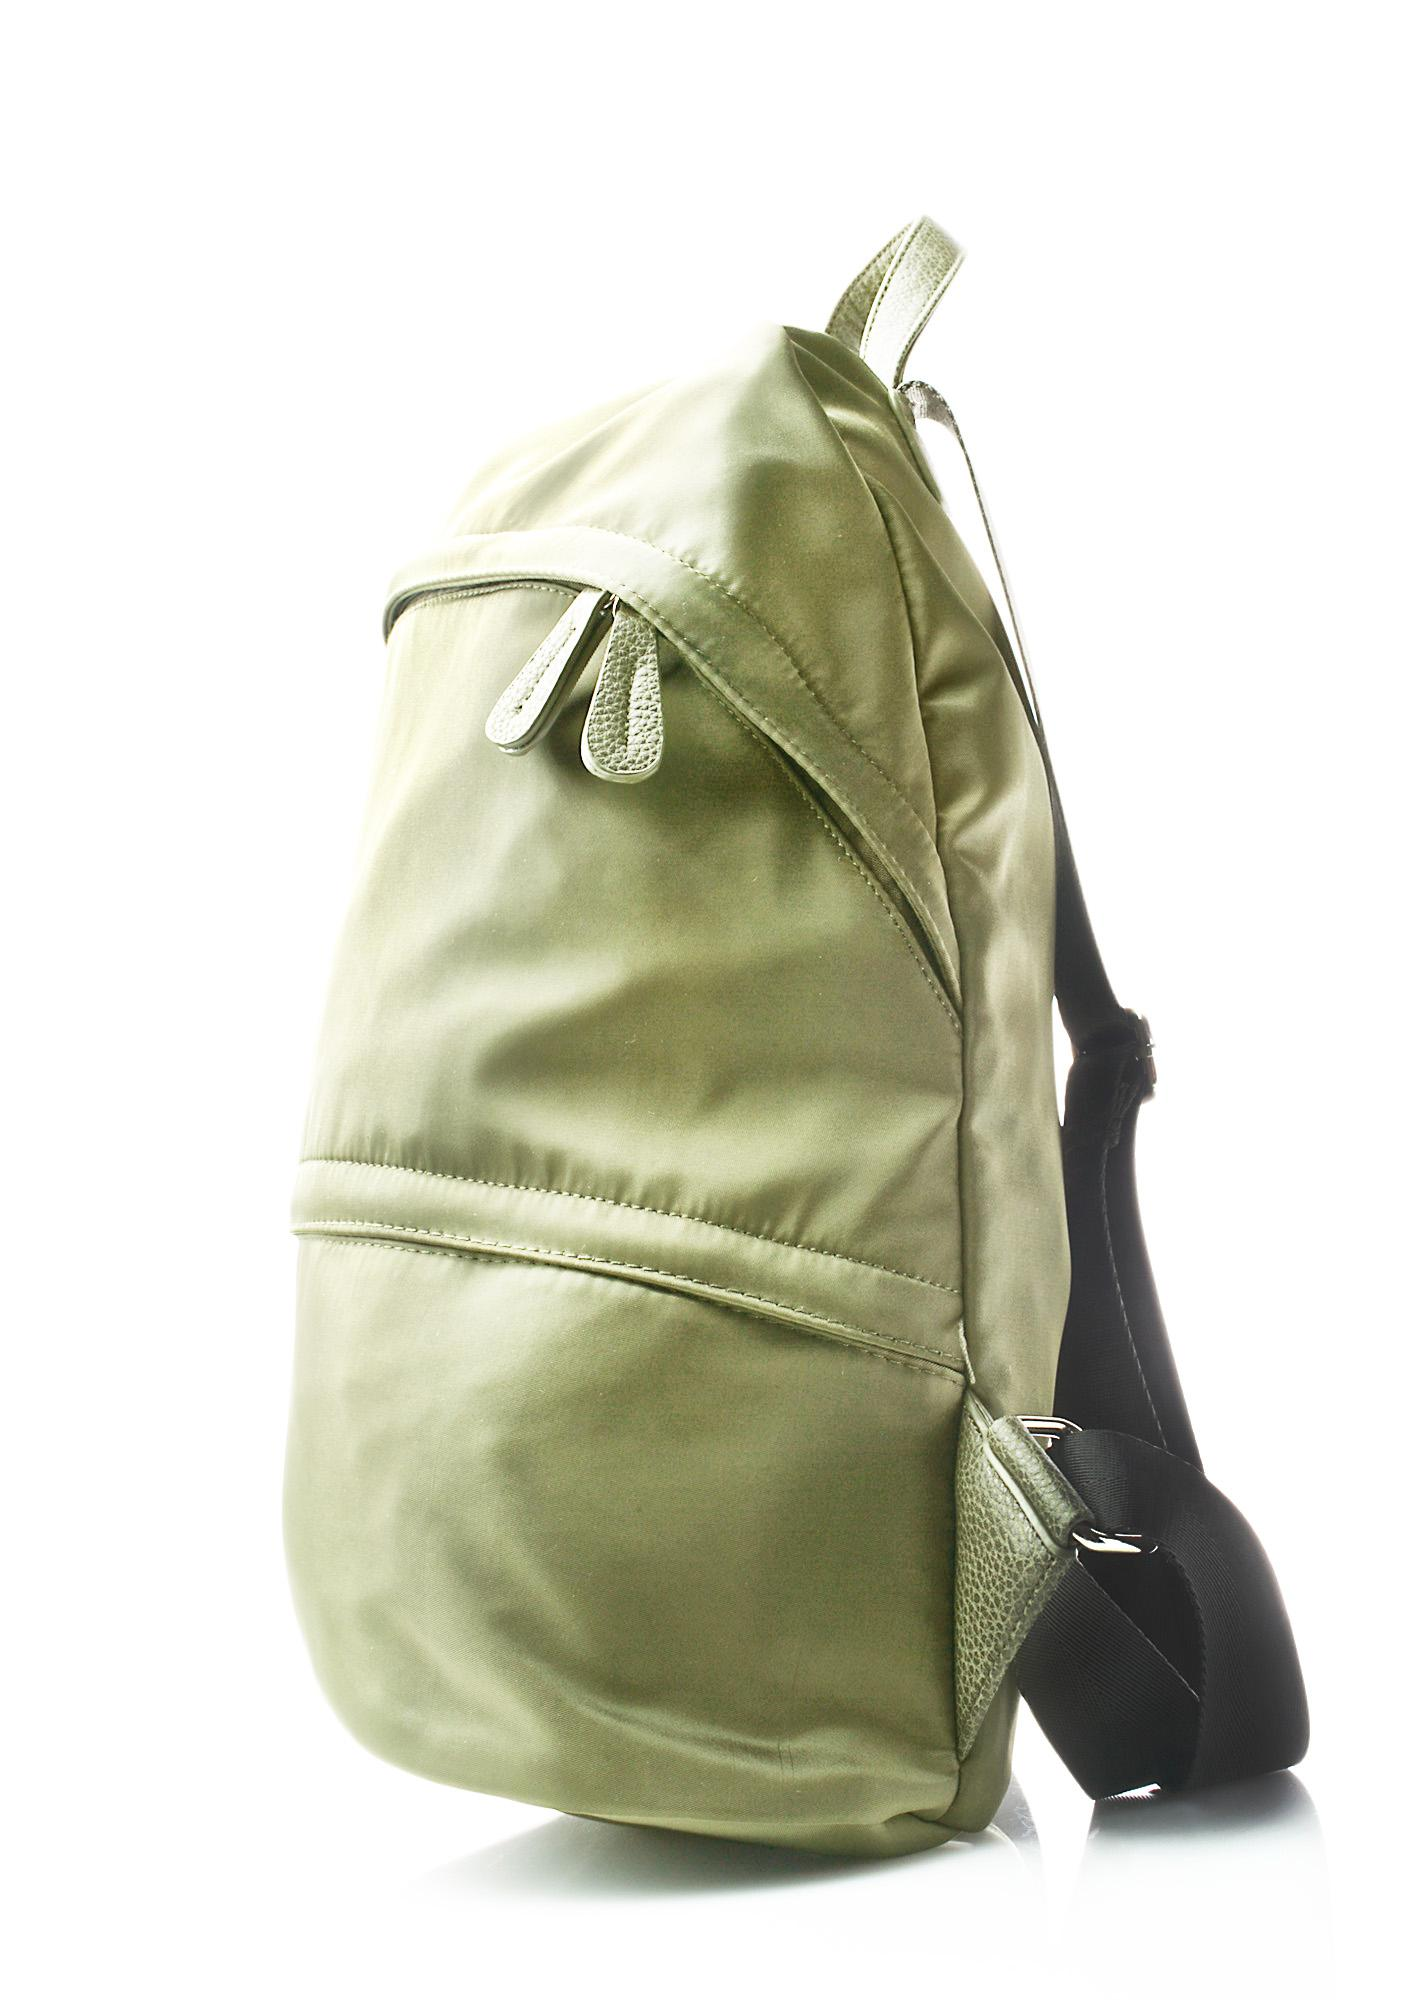 Go Time Backpack